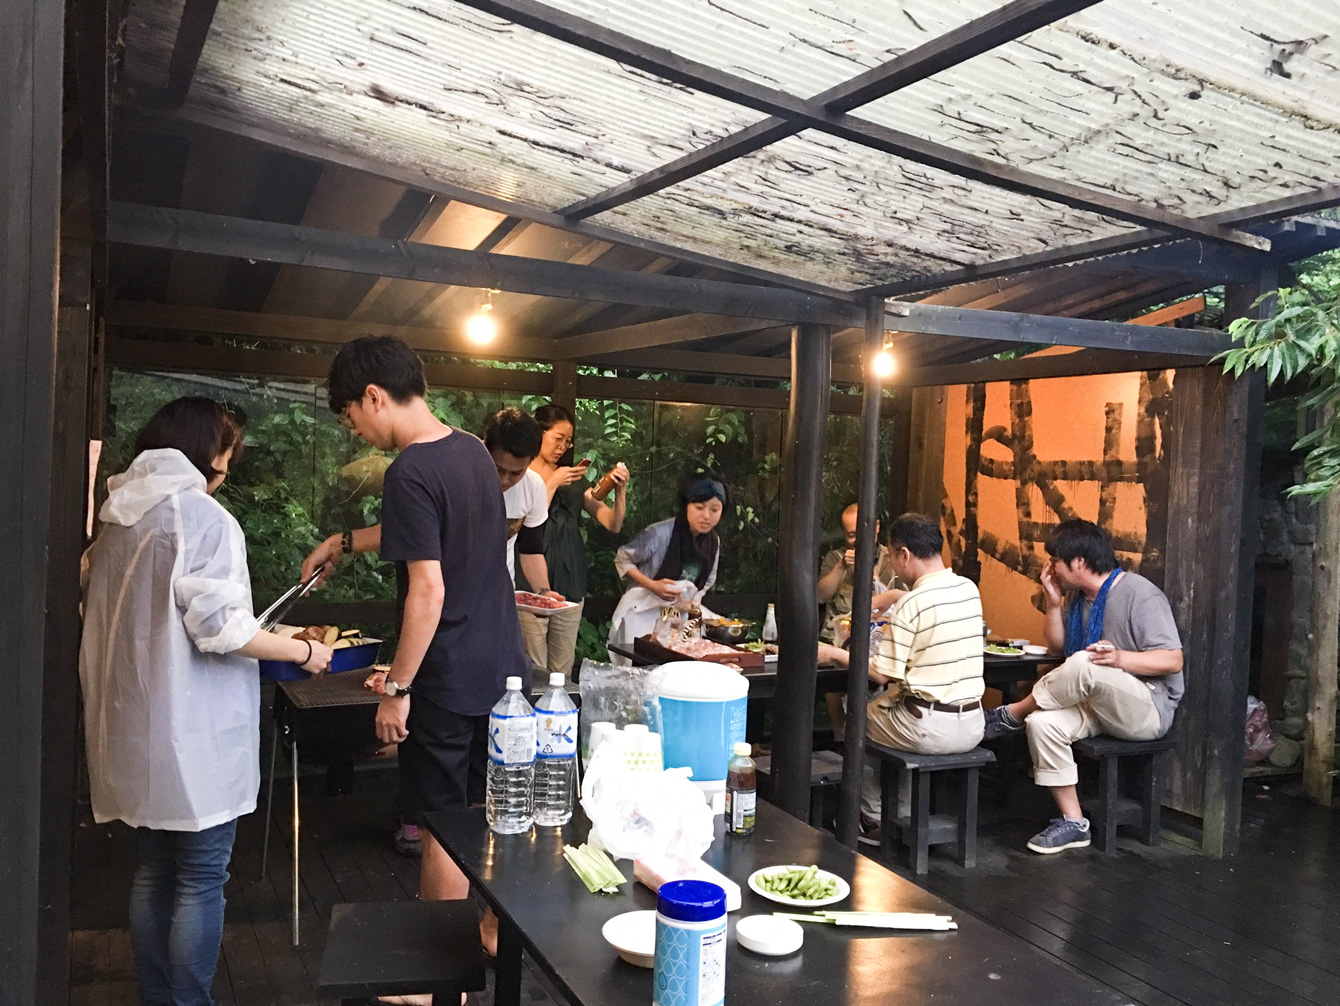 A barbeque party at the wood deck. Kamiyama people often eat grilled venison.